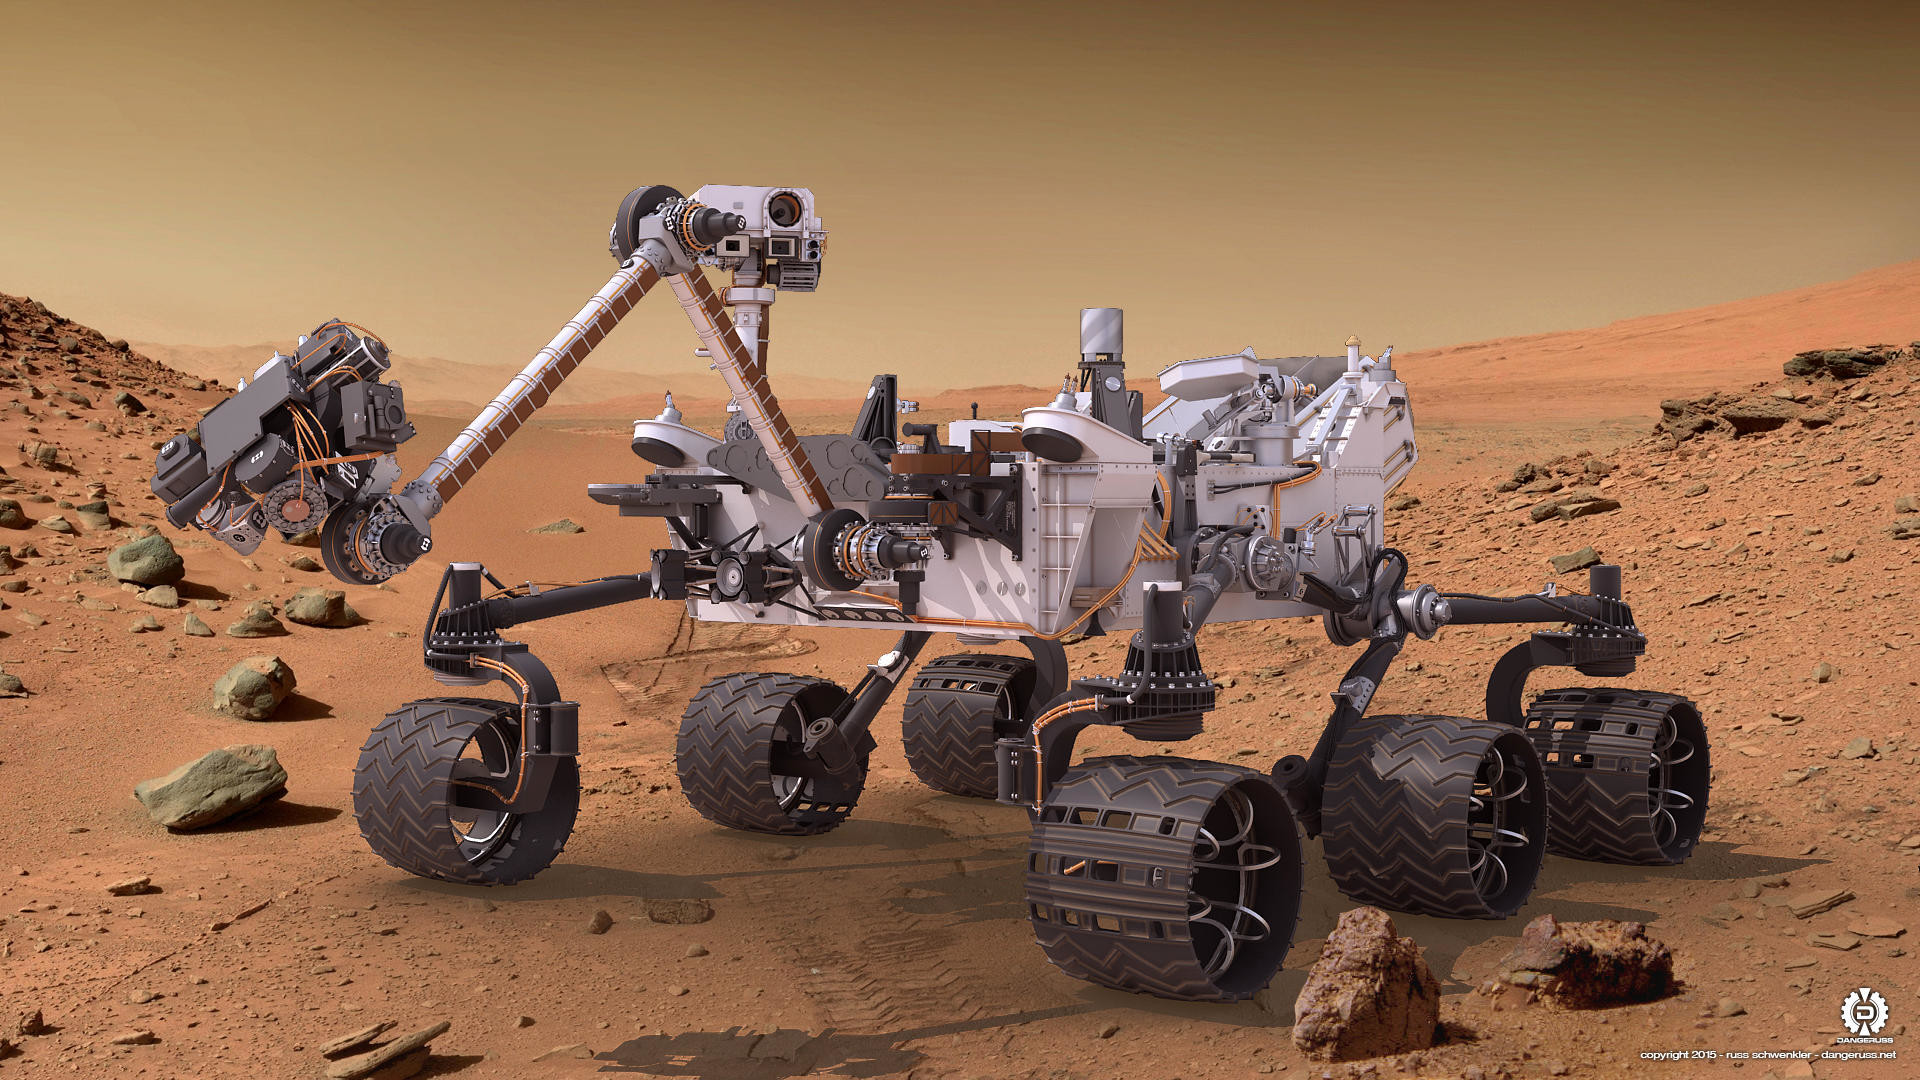 Res: 1920x1080, Mars Rover Pictures Luxe Mars Science Lab Curiosity Rover Render 03 By  Dangeruss On